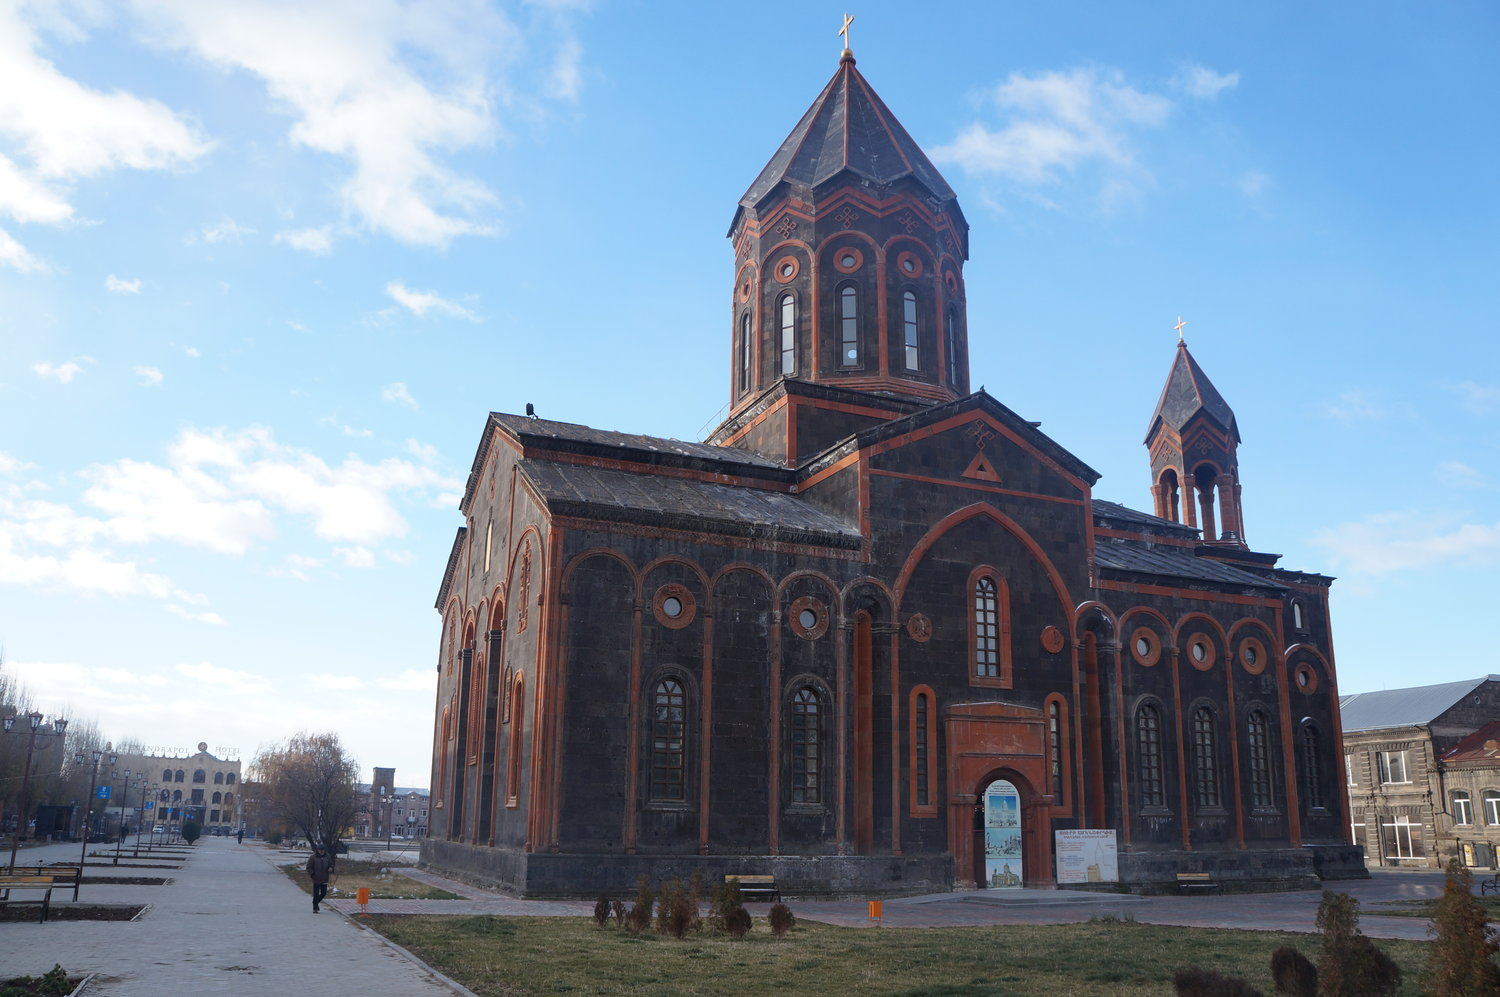 The Holy Savior's Church was built in 1872.  During Soviet times, it was used as a museum and concert hall. The church has been renovated and rebuilt since the damage it sustained in 1988.